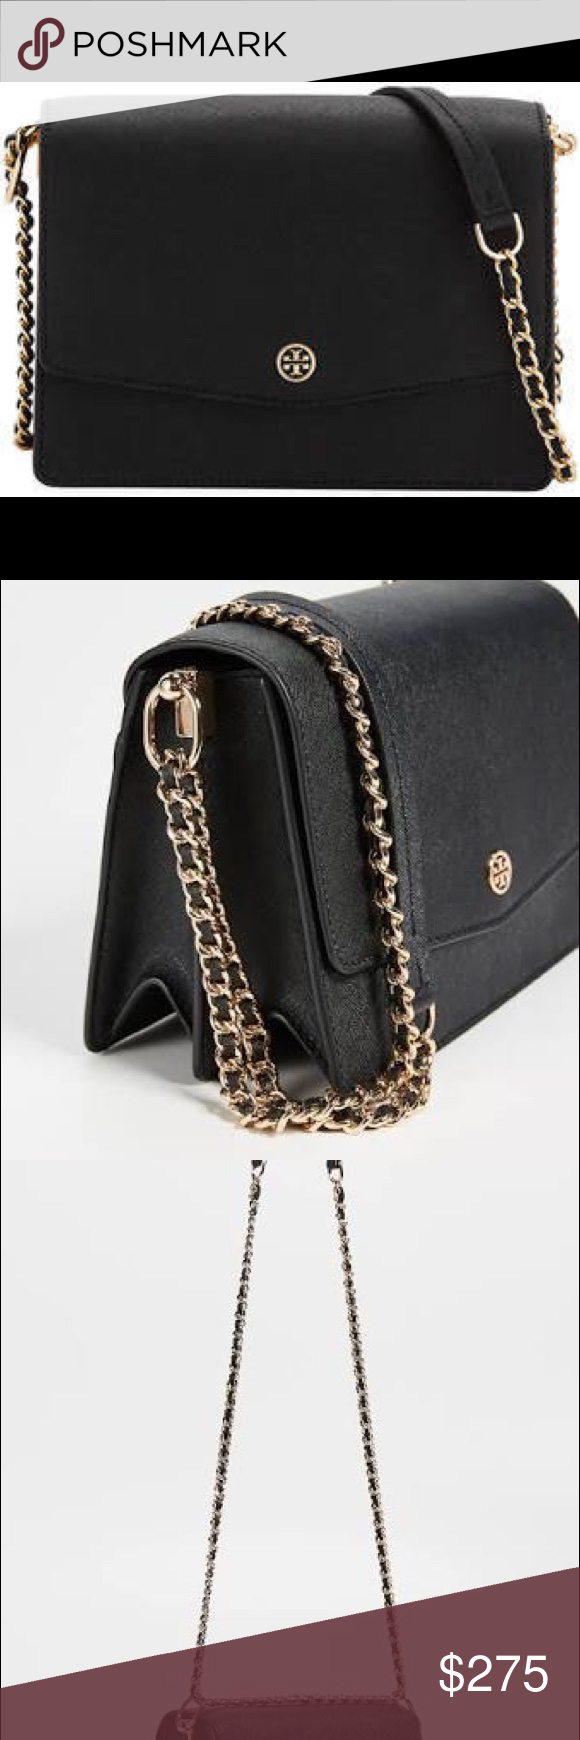 ee30ea5b142 Tory Burch mini bag Tory Burch Robinson Convertible Shoulder bag black Tory  Burch Bags Mini Bags